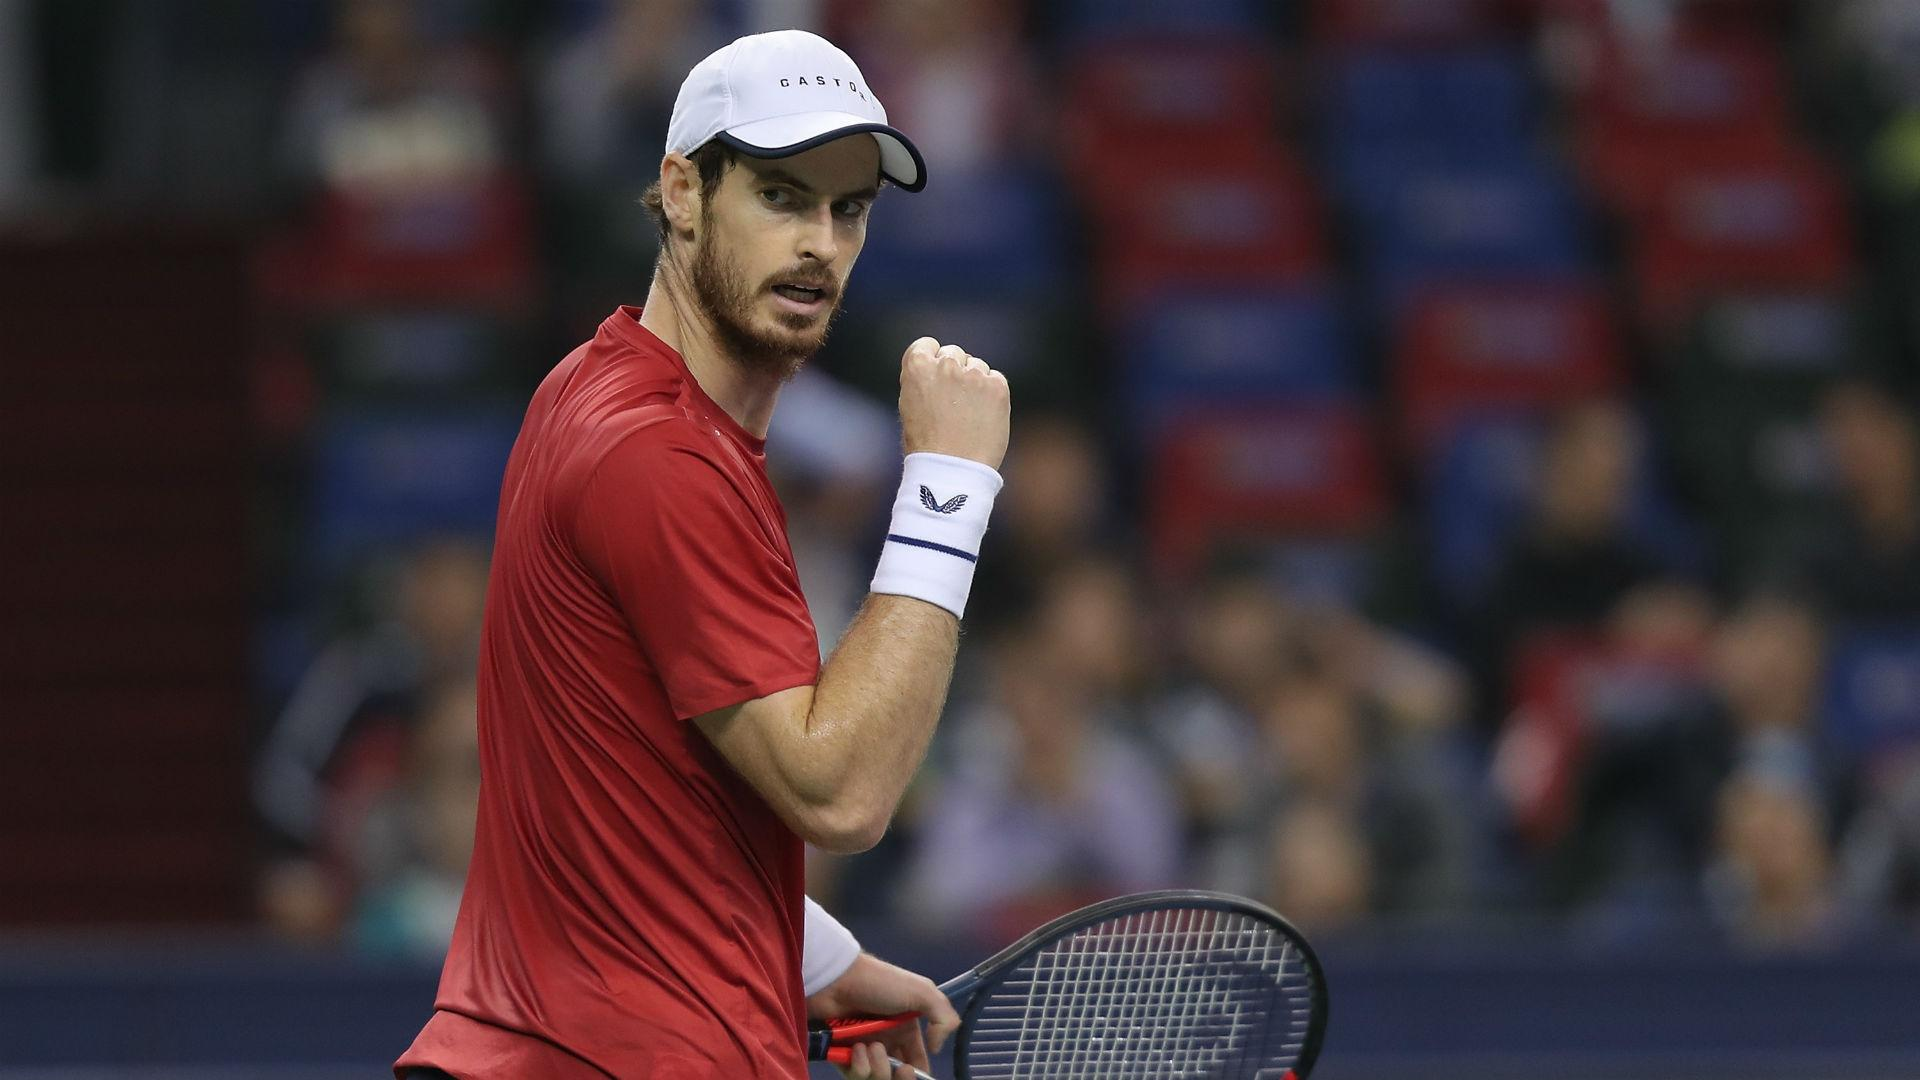 He S Not Losing Ground Becker Expects Murray To Benefit From Tennis Hiatus